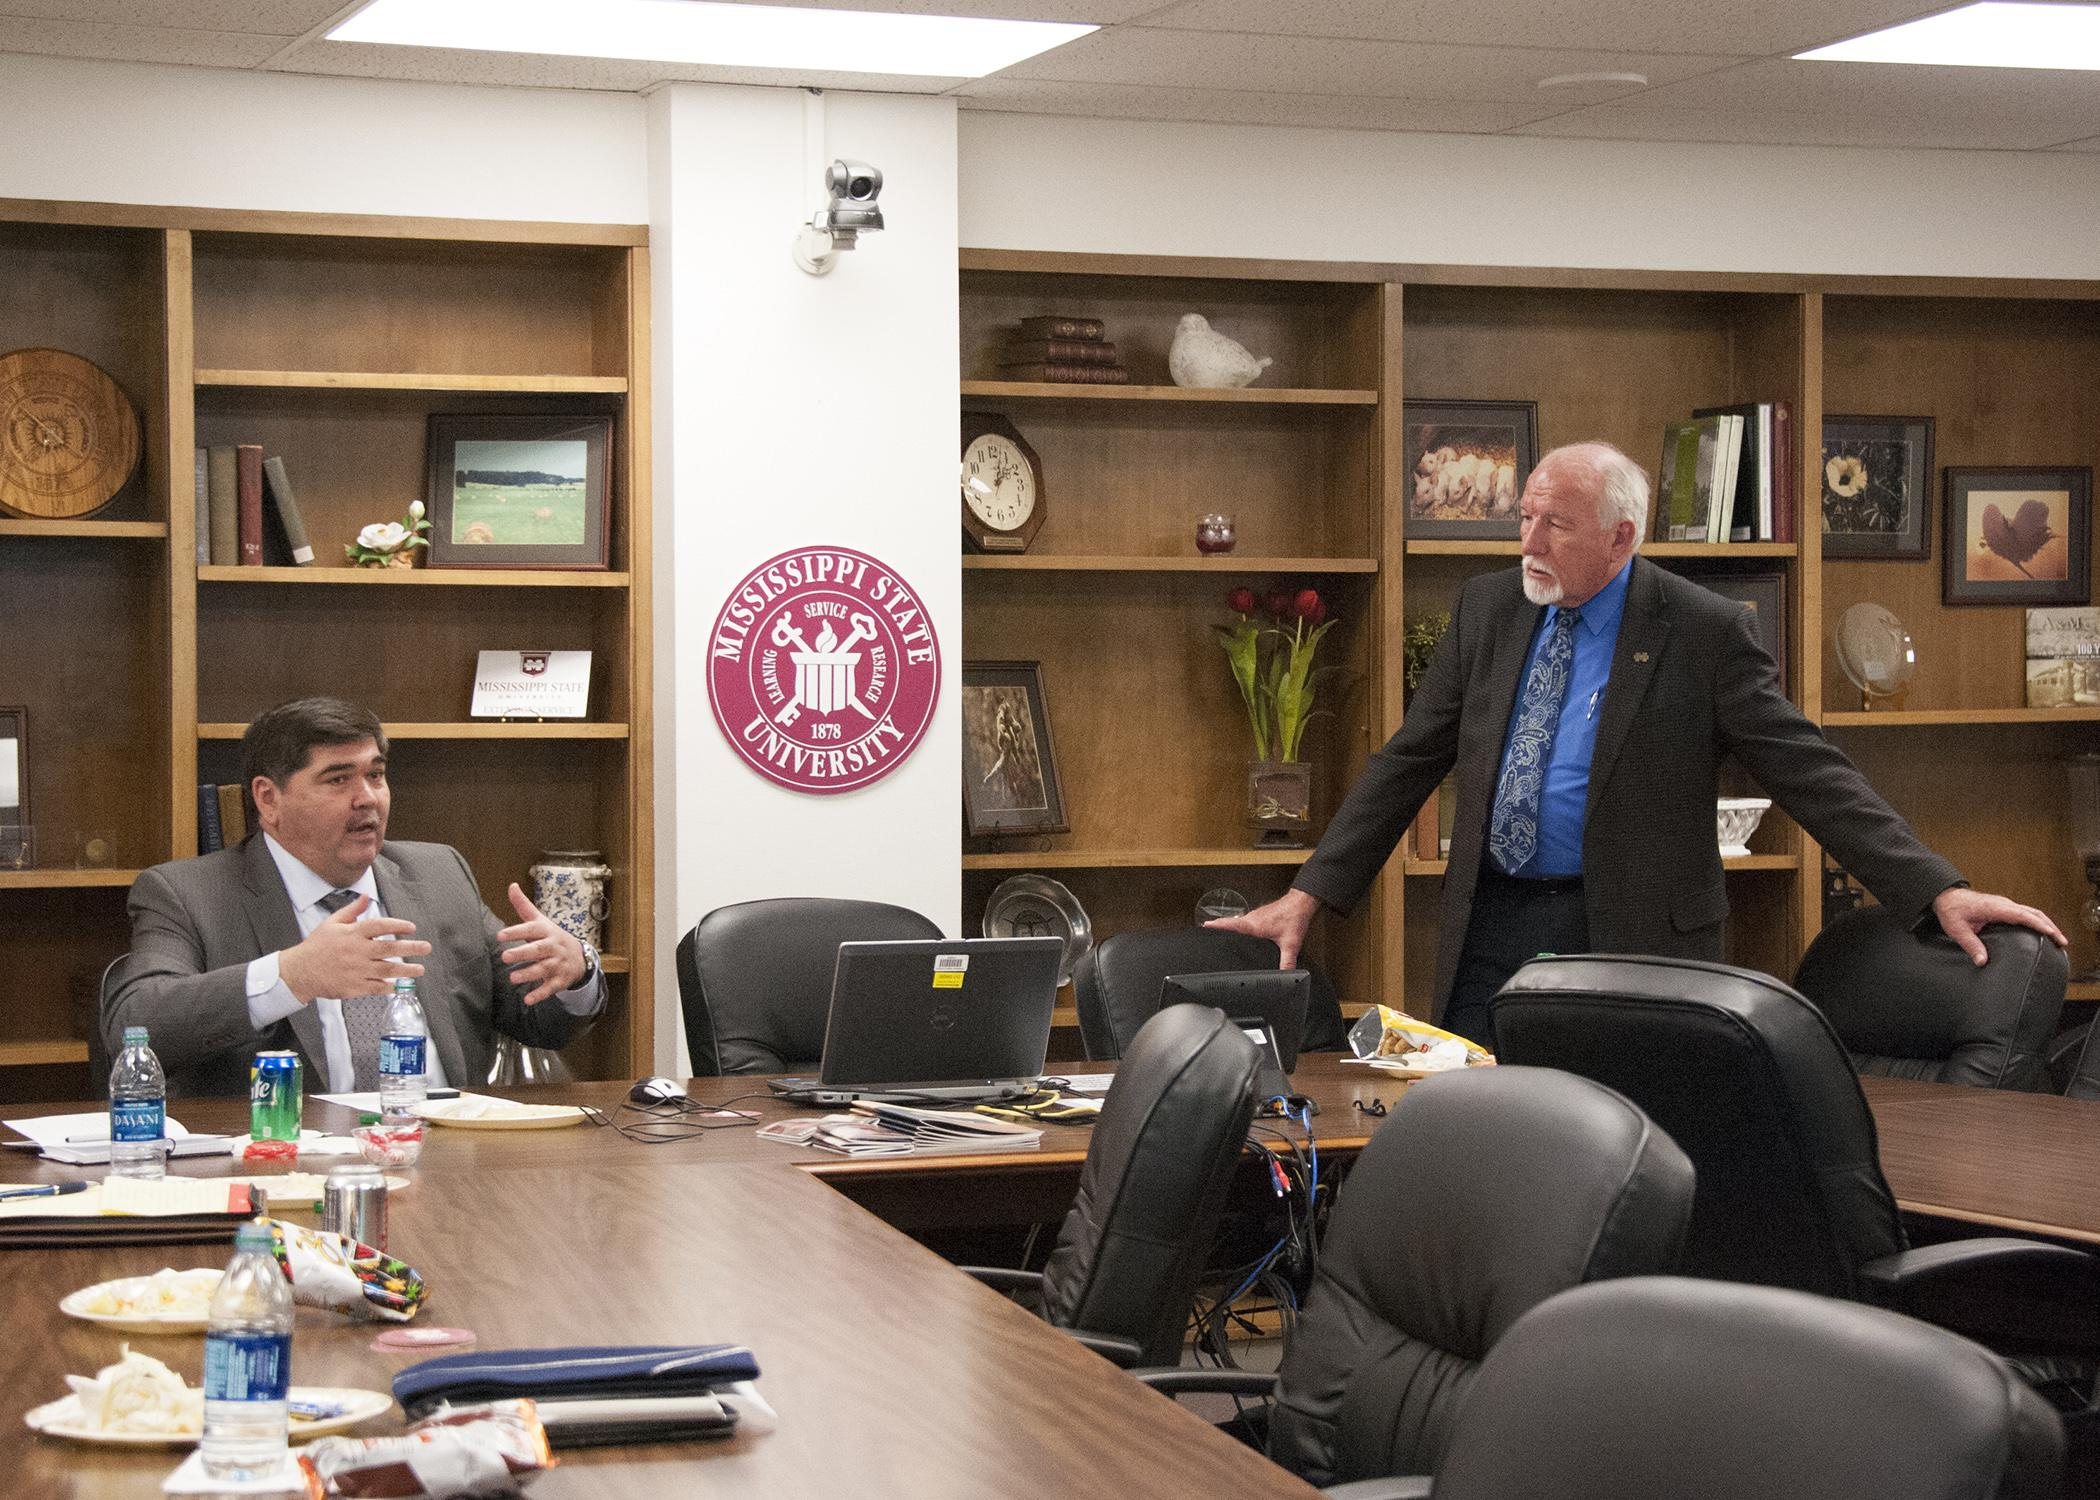 H.E. Bakhtiyar Gulyamov, left, speaks during a meeting with Bill Herndon, associate vice president of the Mississippi State University Division of Agriculture, Forestry and Veterinary Medicine April 15, 2015. Gulyamov is Ambassador Extraordinary and Plenipotentiary of the Republic of Uzbekistan to the United States. (Photo by MSU Extension Service/Kat Lawrence)